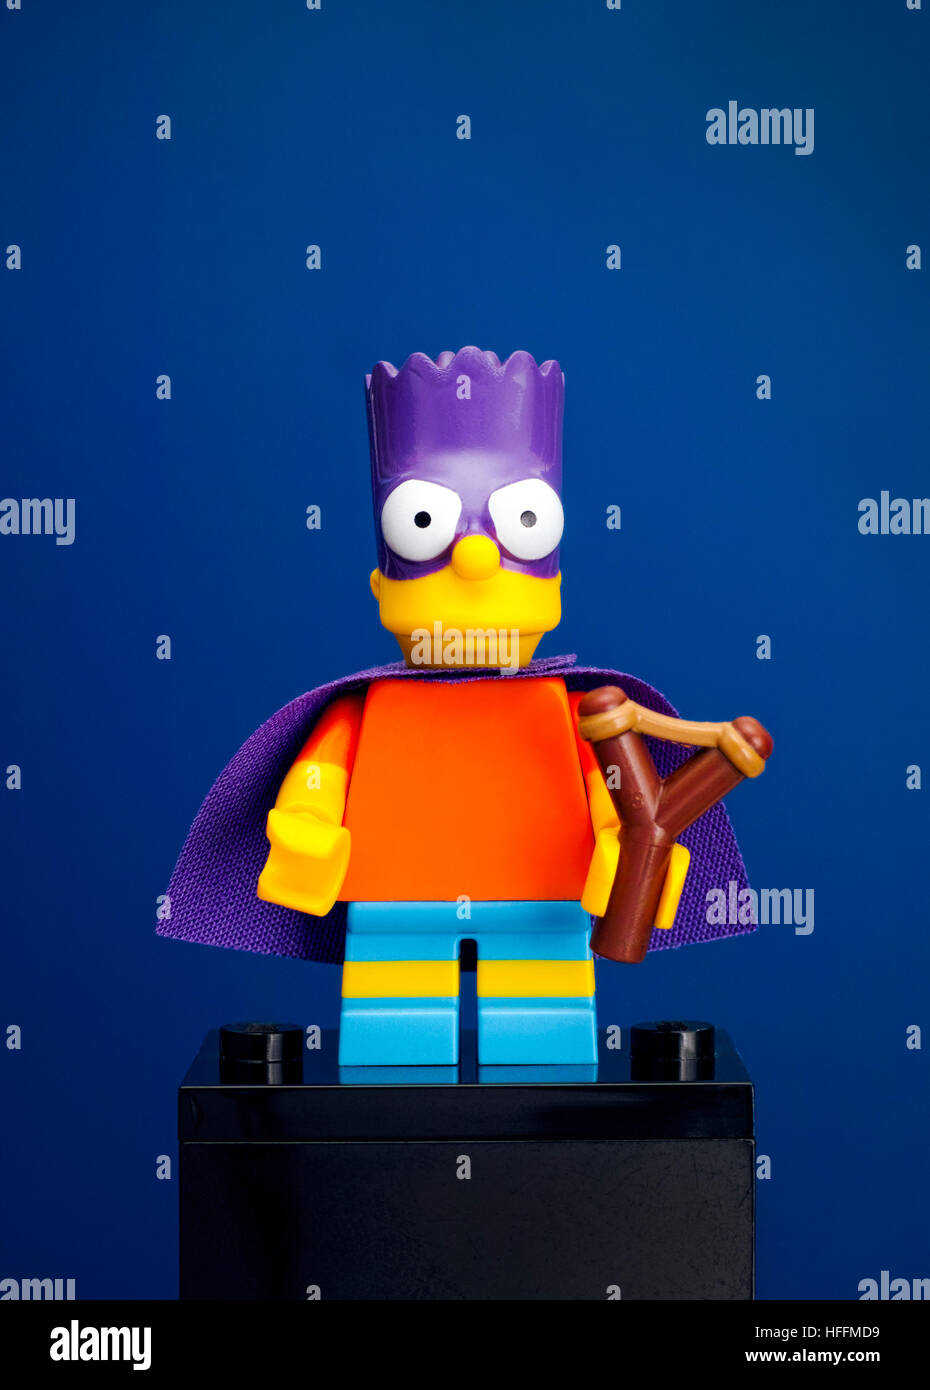 Tambov, Russian Federation - June 08, 2015 Lego Bart Simpson minifigure as a Bartman with slingshot on blue background. - Stock Image